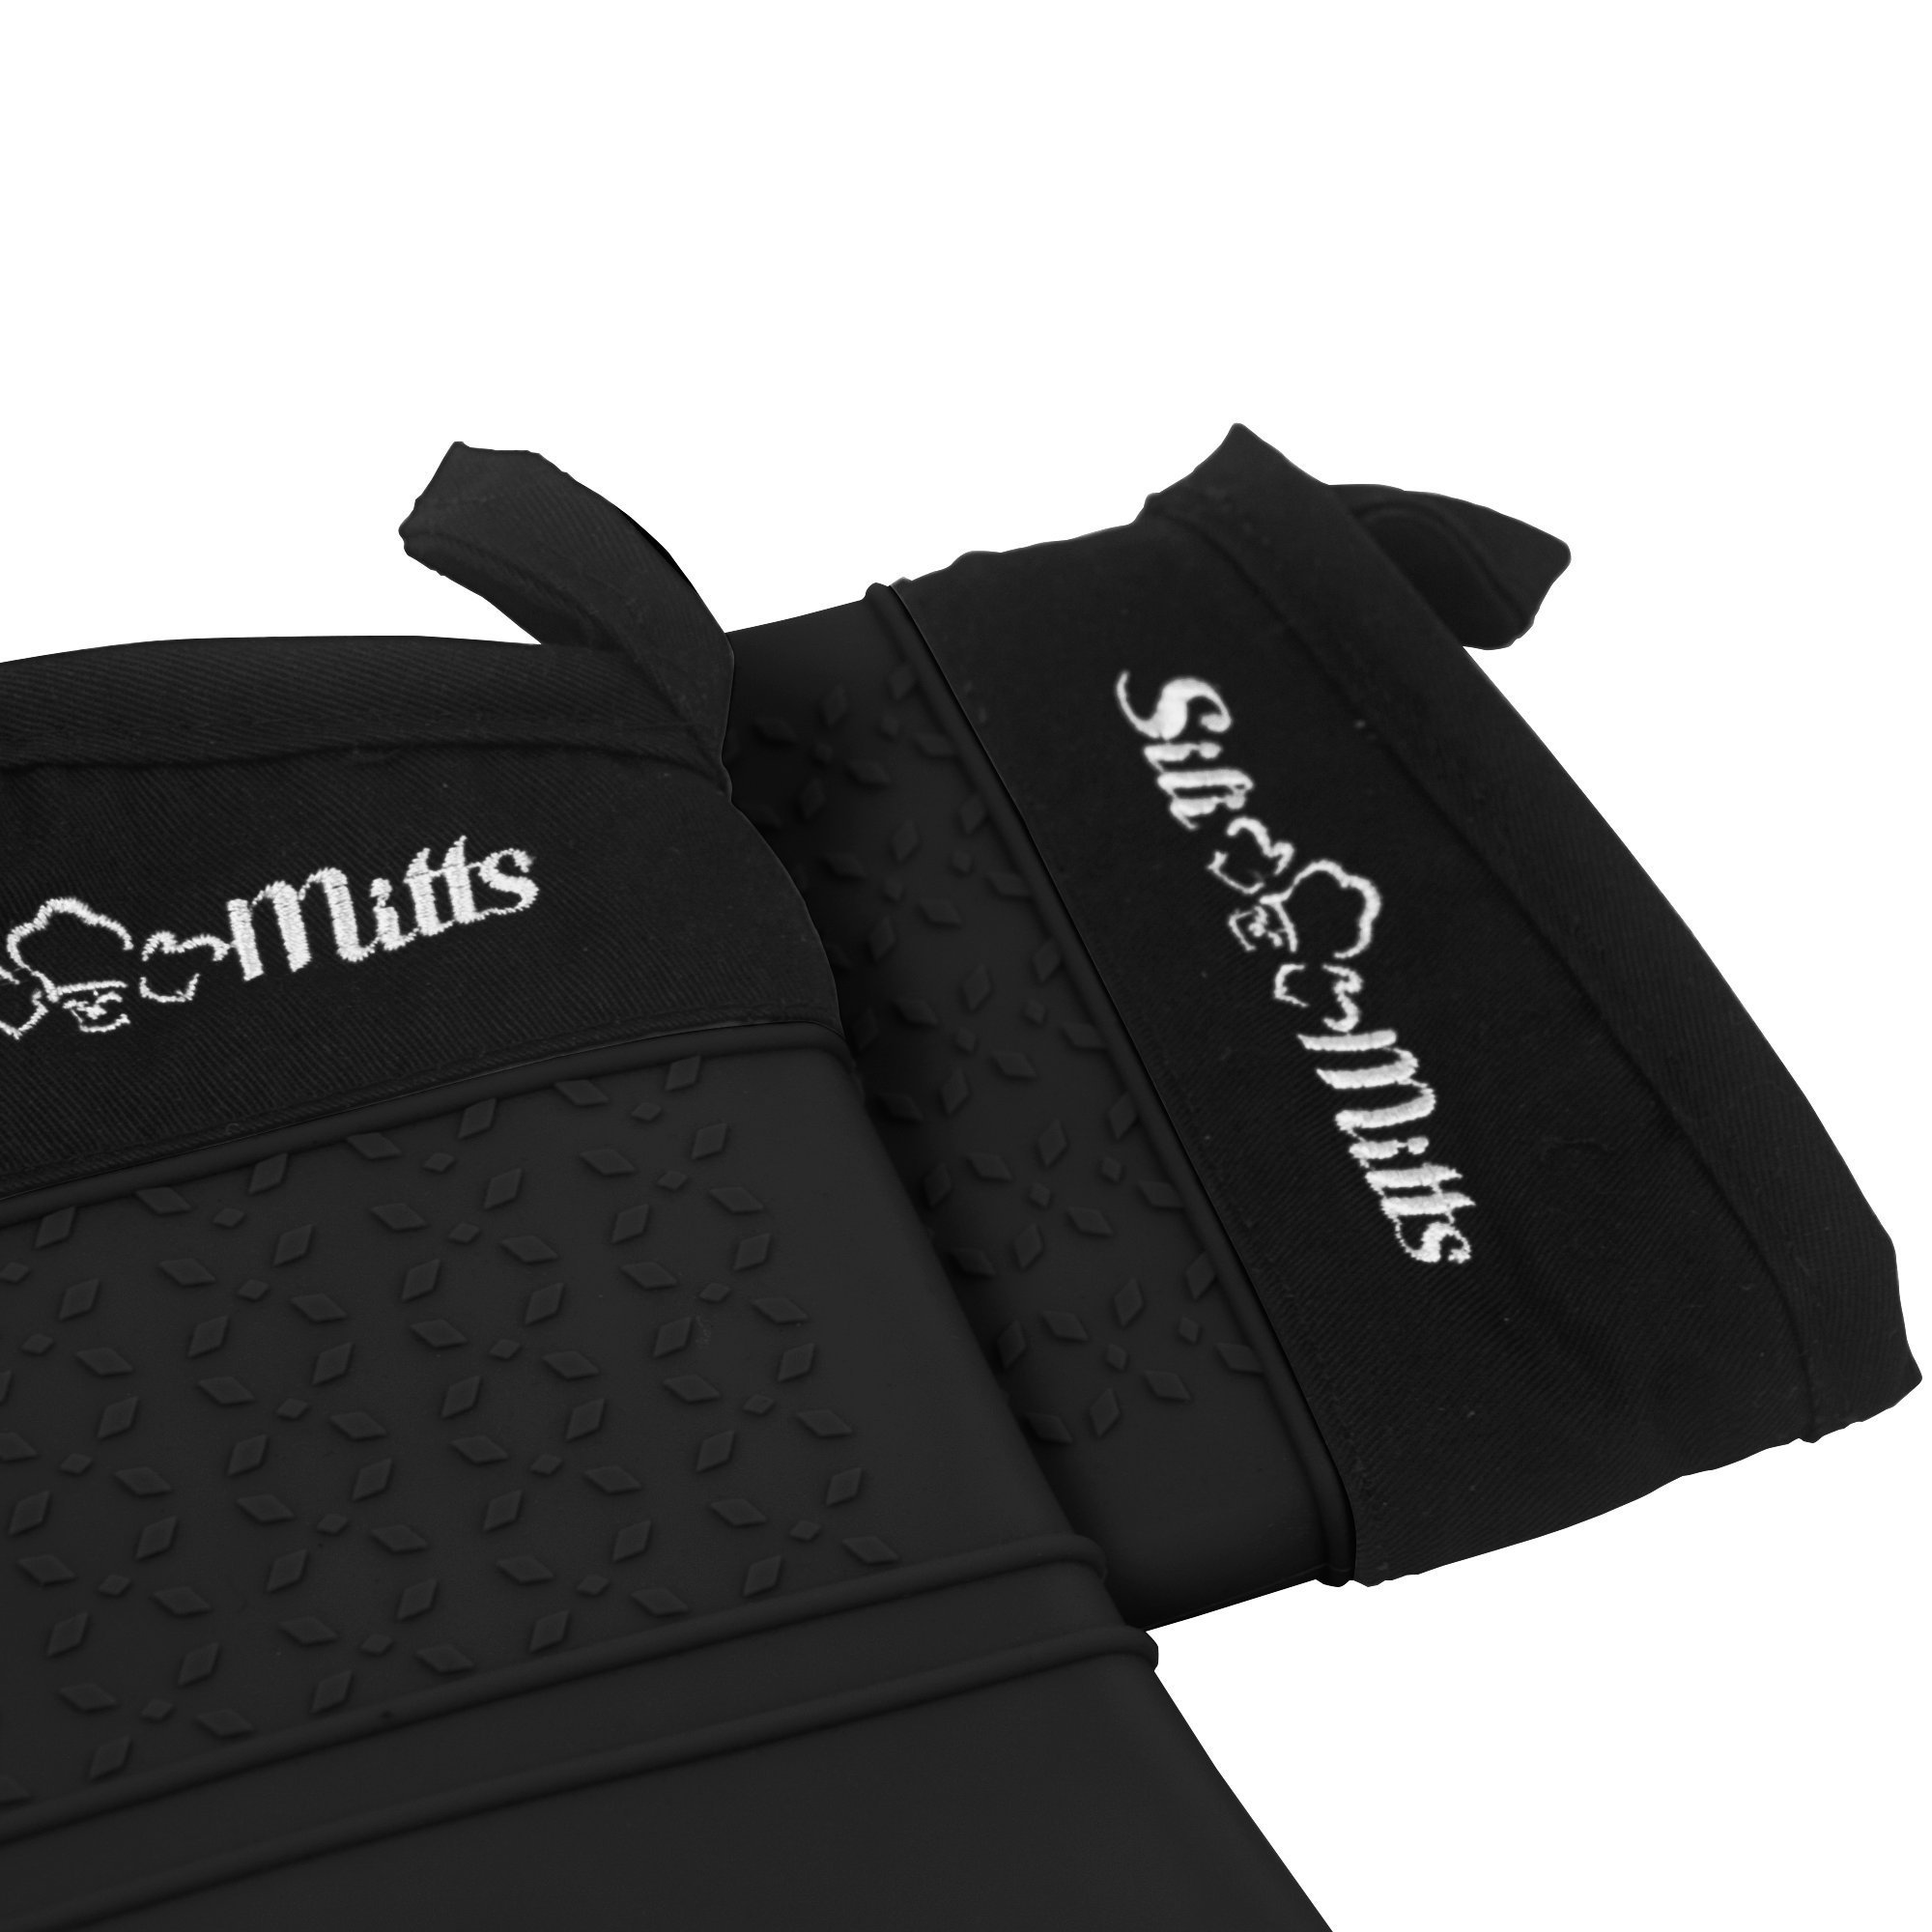 Black Silicone Oven Hot Mitts - 1 Pair of Extra Long Professional Heat Resistant Pot Holder & Baking Gloves - Food Safe, BPA Free FDA Approved With Soft Inner Lining by Frux Home and Yard (Image #4)